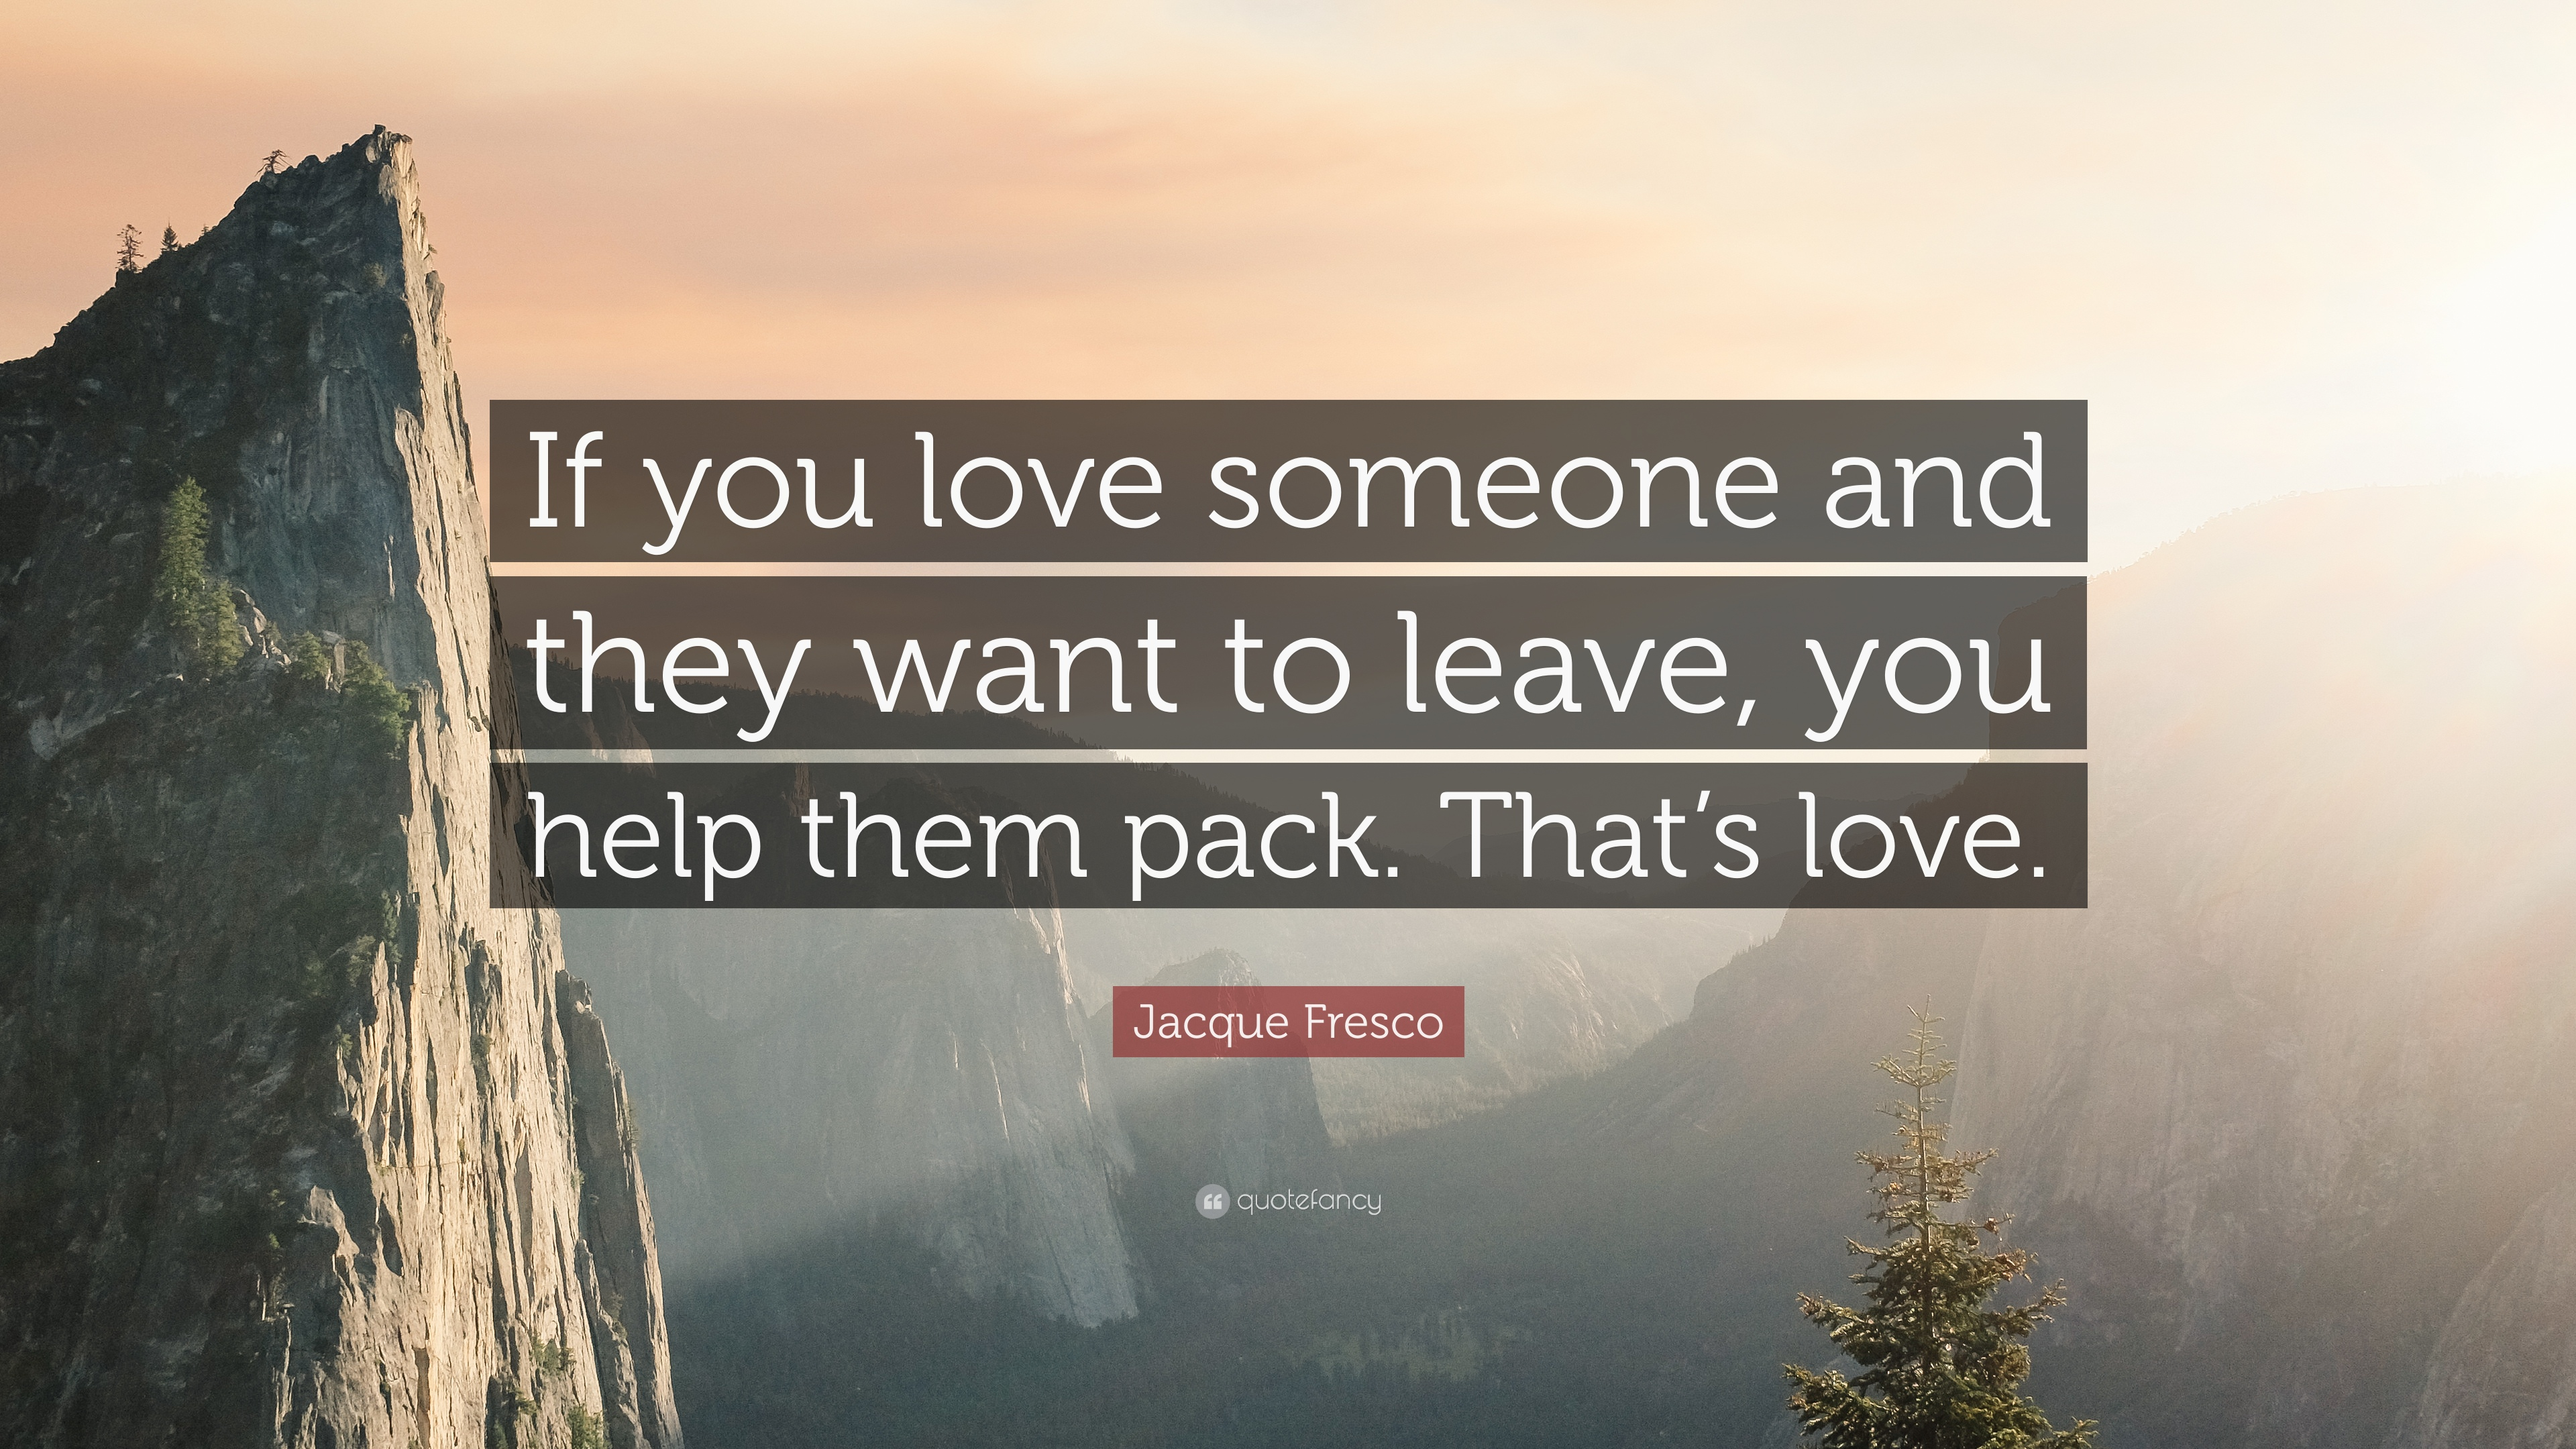 When you have to leave someone you love